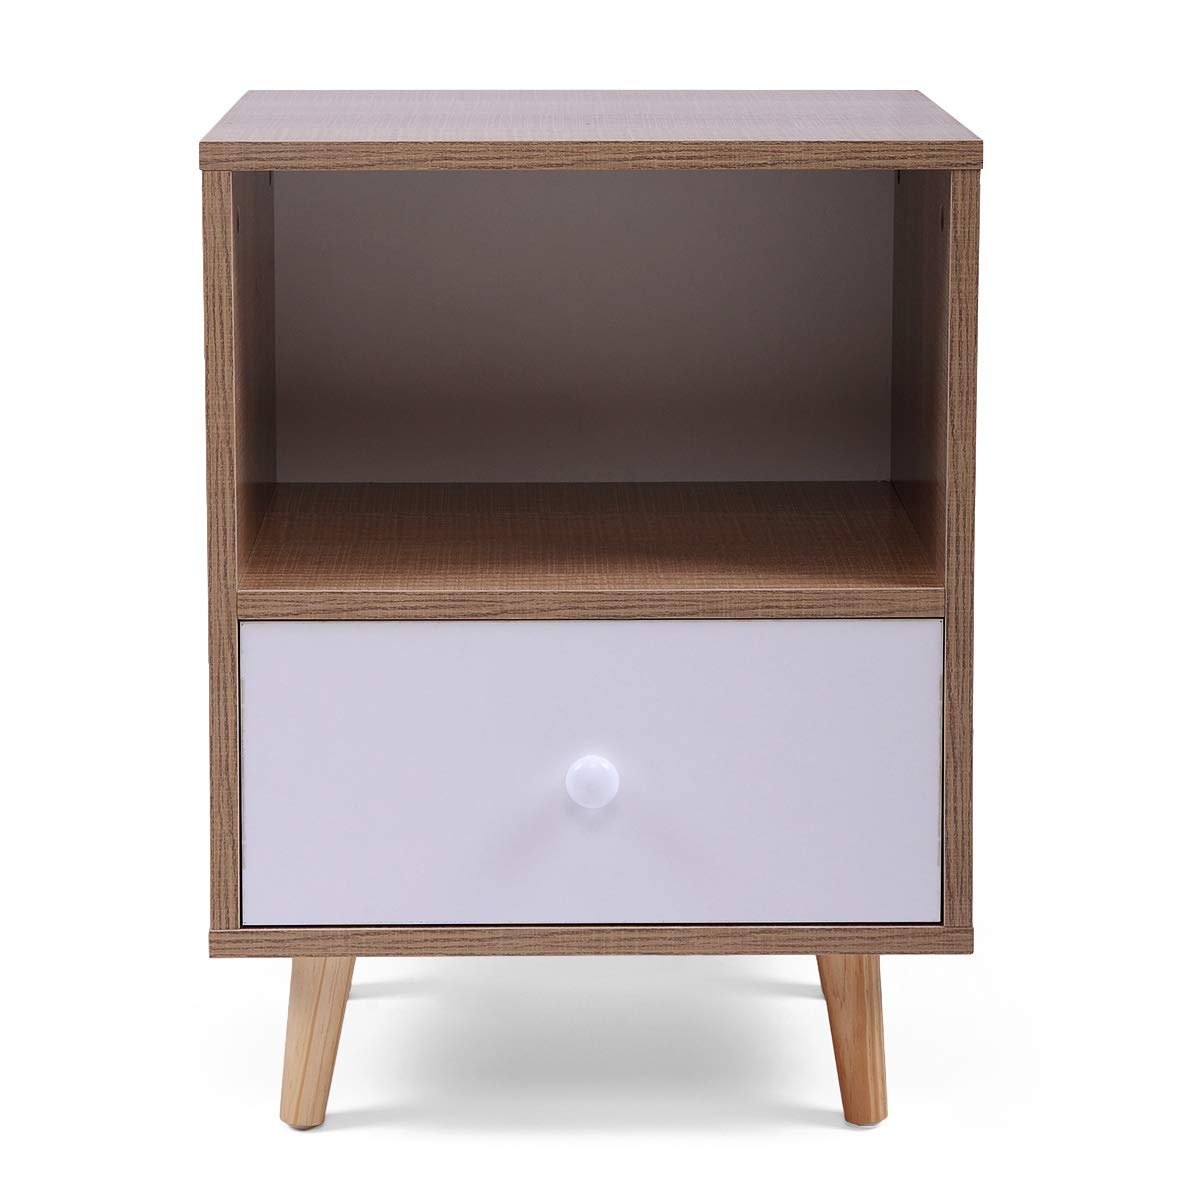 Set of 2 Night Stand 2 Layer w/Drawer Bedside End Table Organizer Bedroom by Betterhomechoice (Image #5)